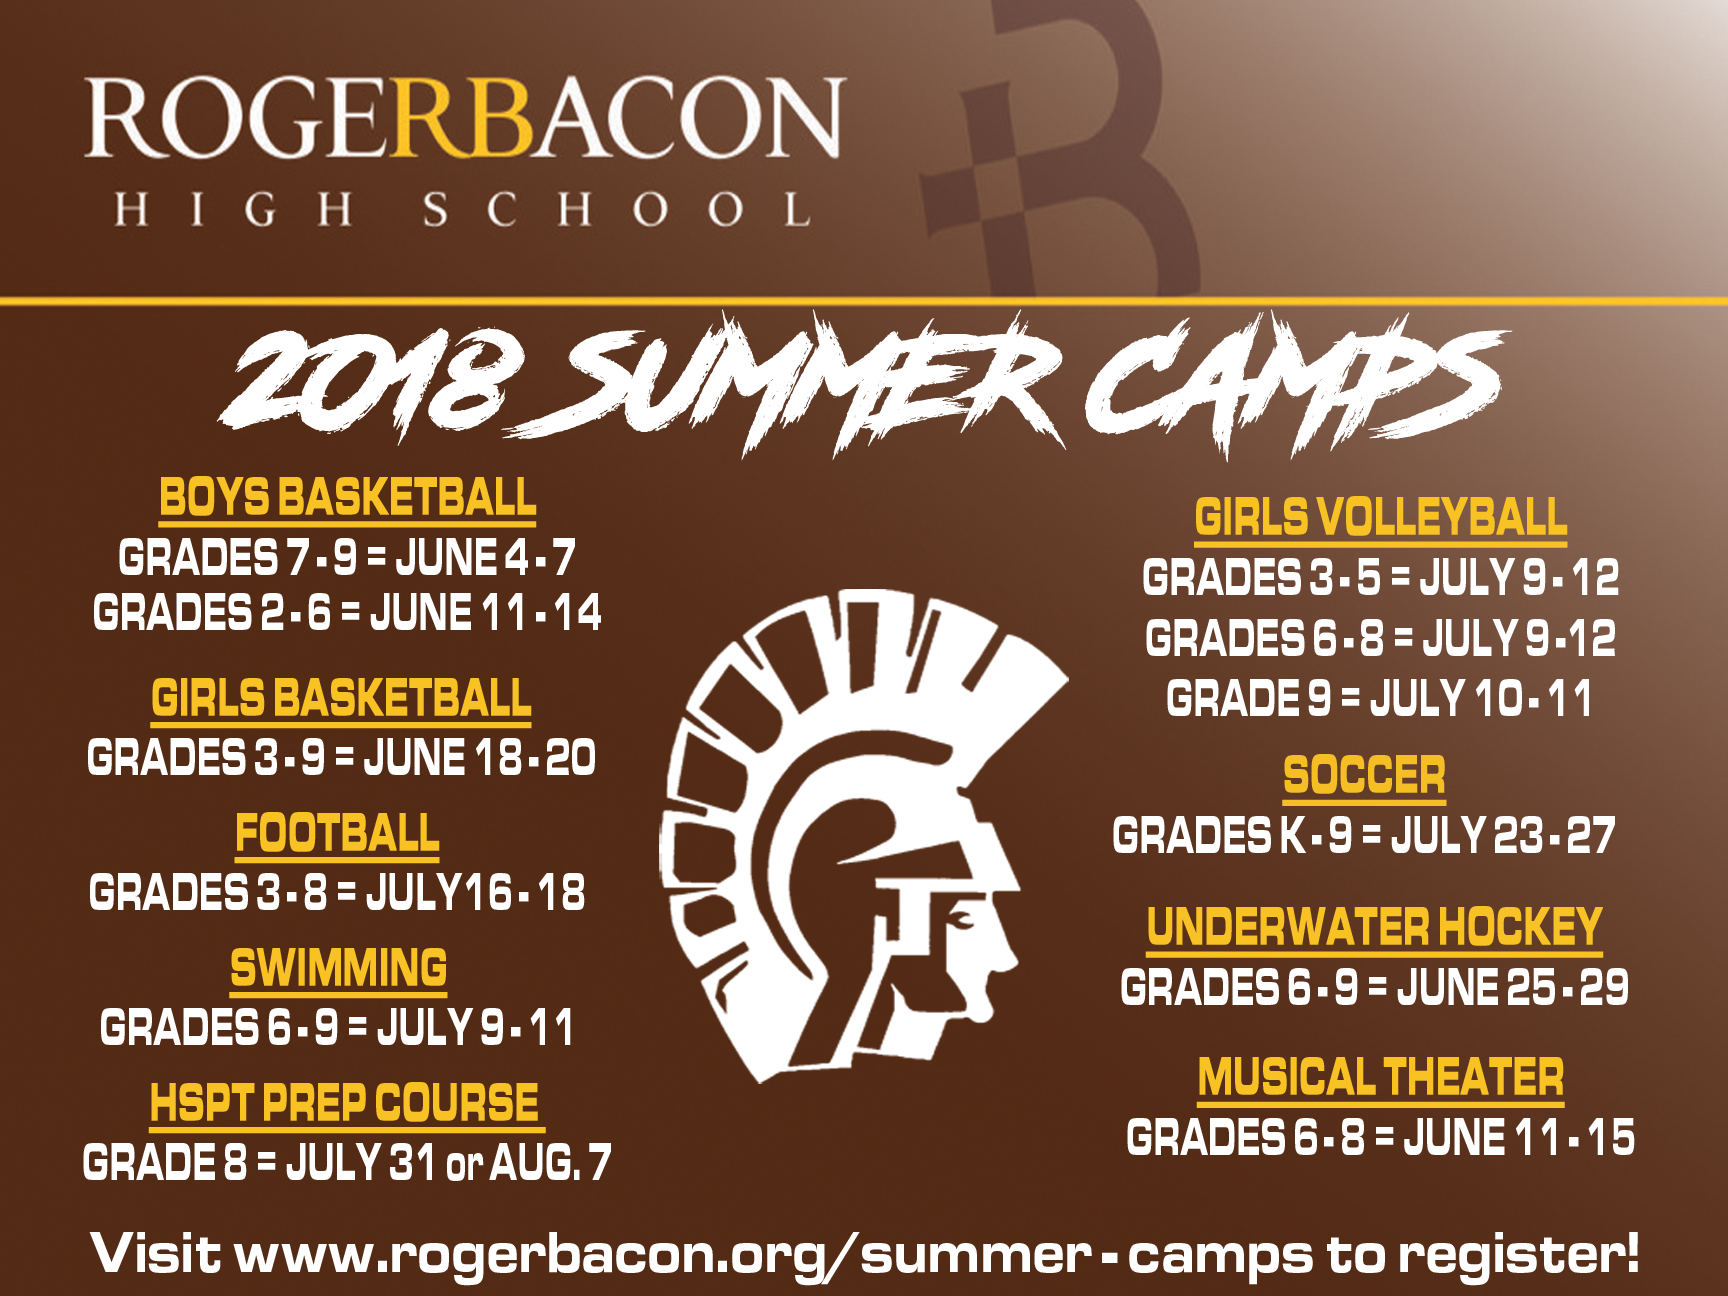 2018 Summer Camps!